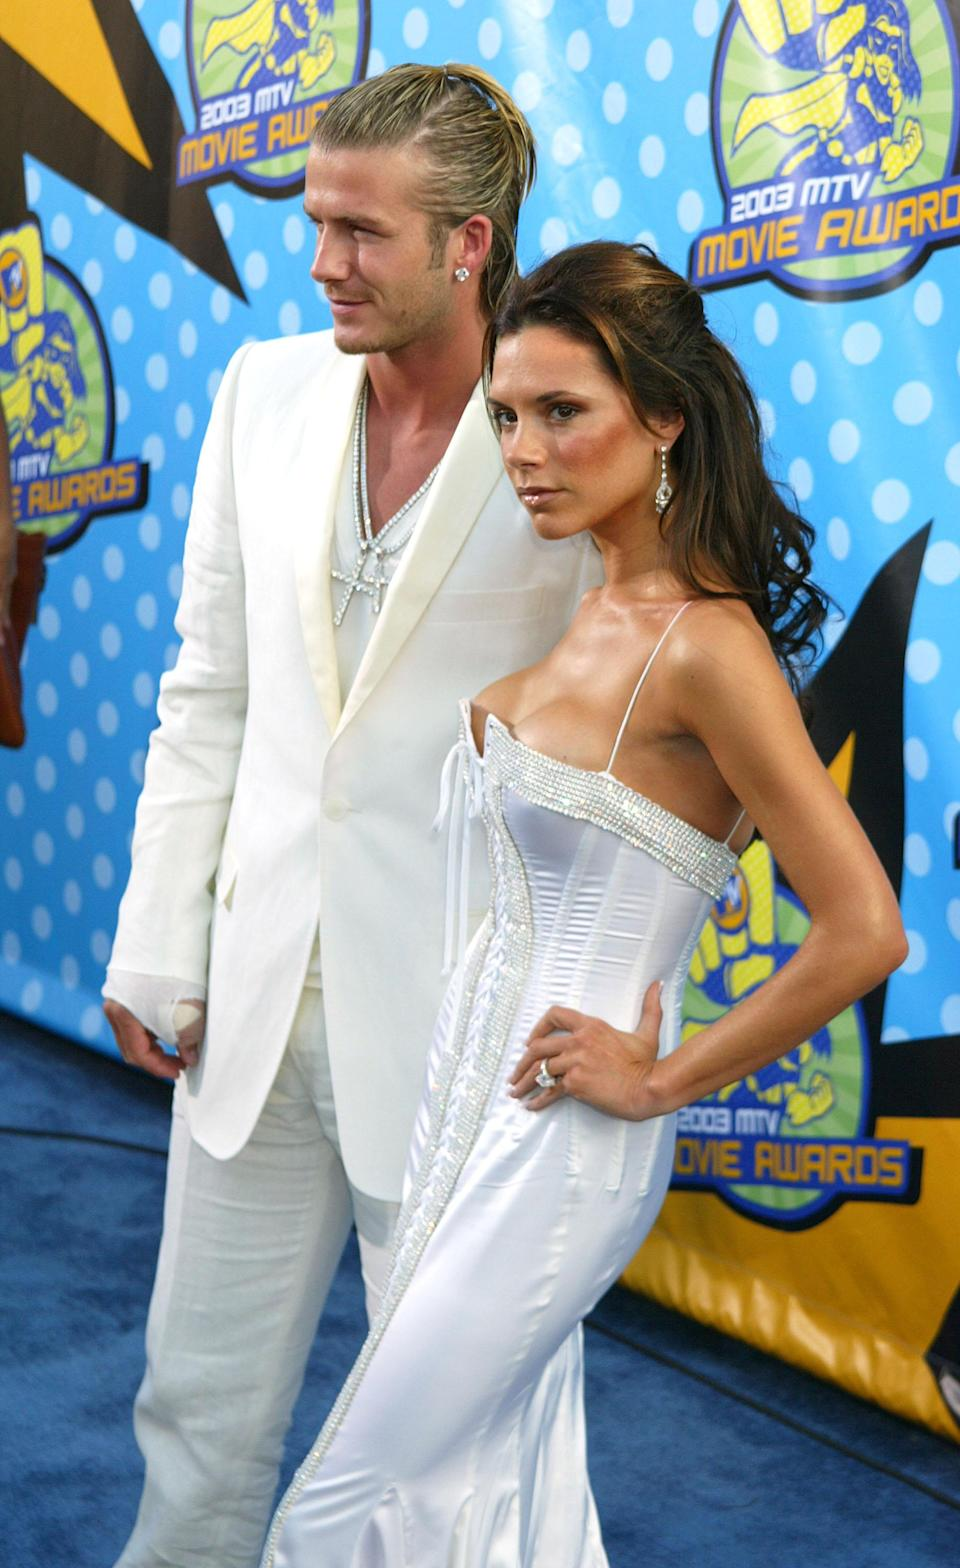 <p><strong>The specs: </strong>In the year 2003, David and Victoria made a now-iconic appearance at the MTV Awards where Victoria appeared to have upgraded her eternity band for something slightly heavier. <br><strong>The price: </strong>Not known.<br>[Photo: Getty] </p>